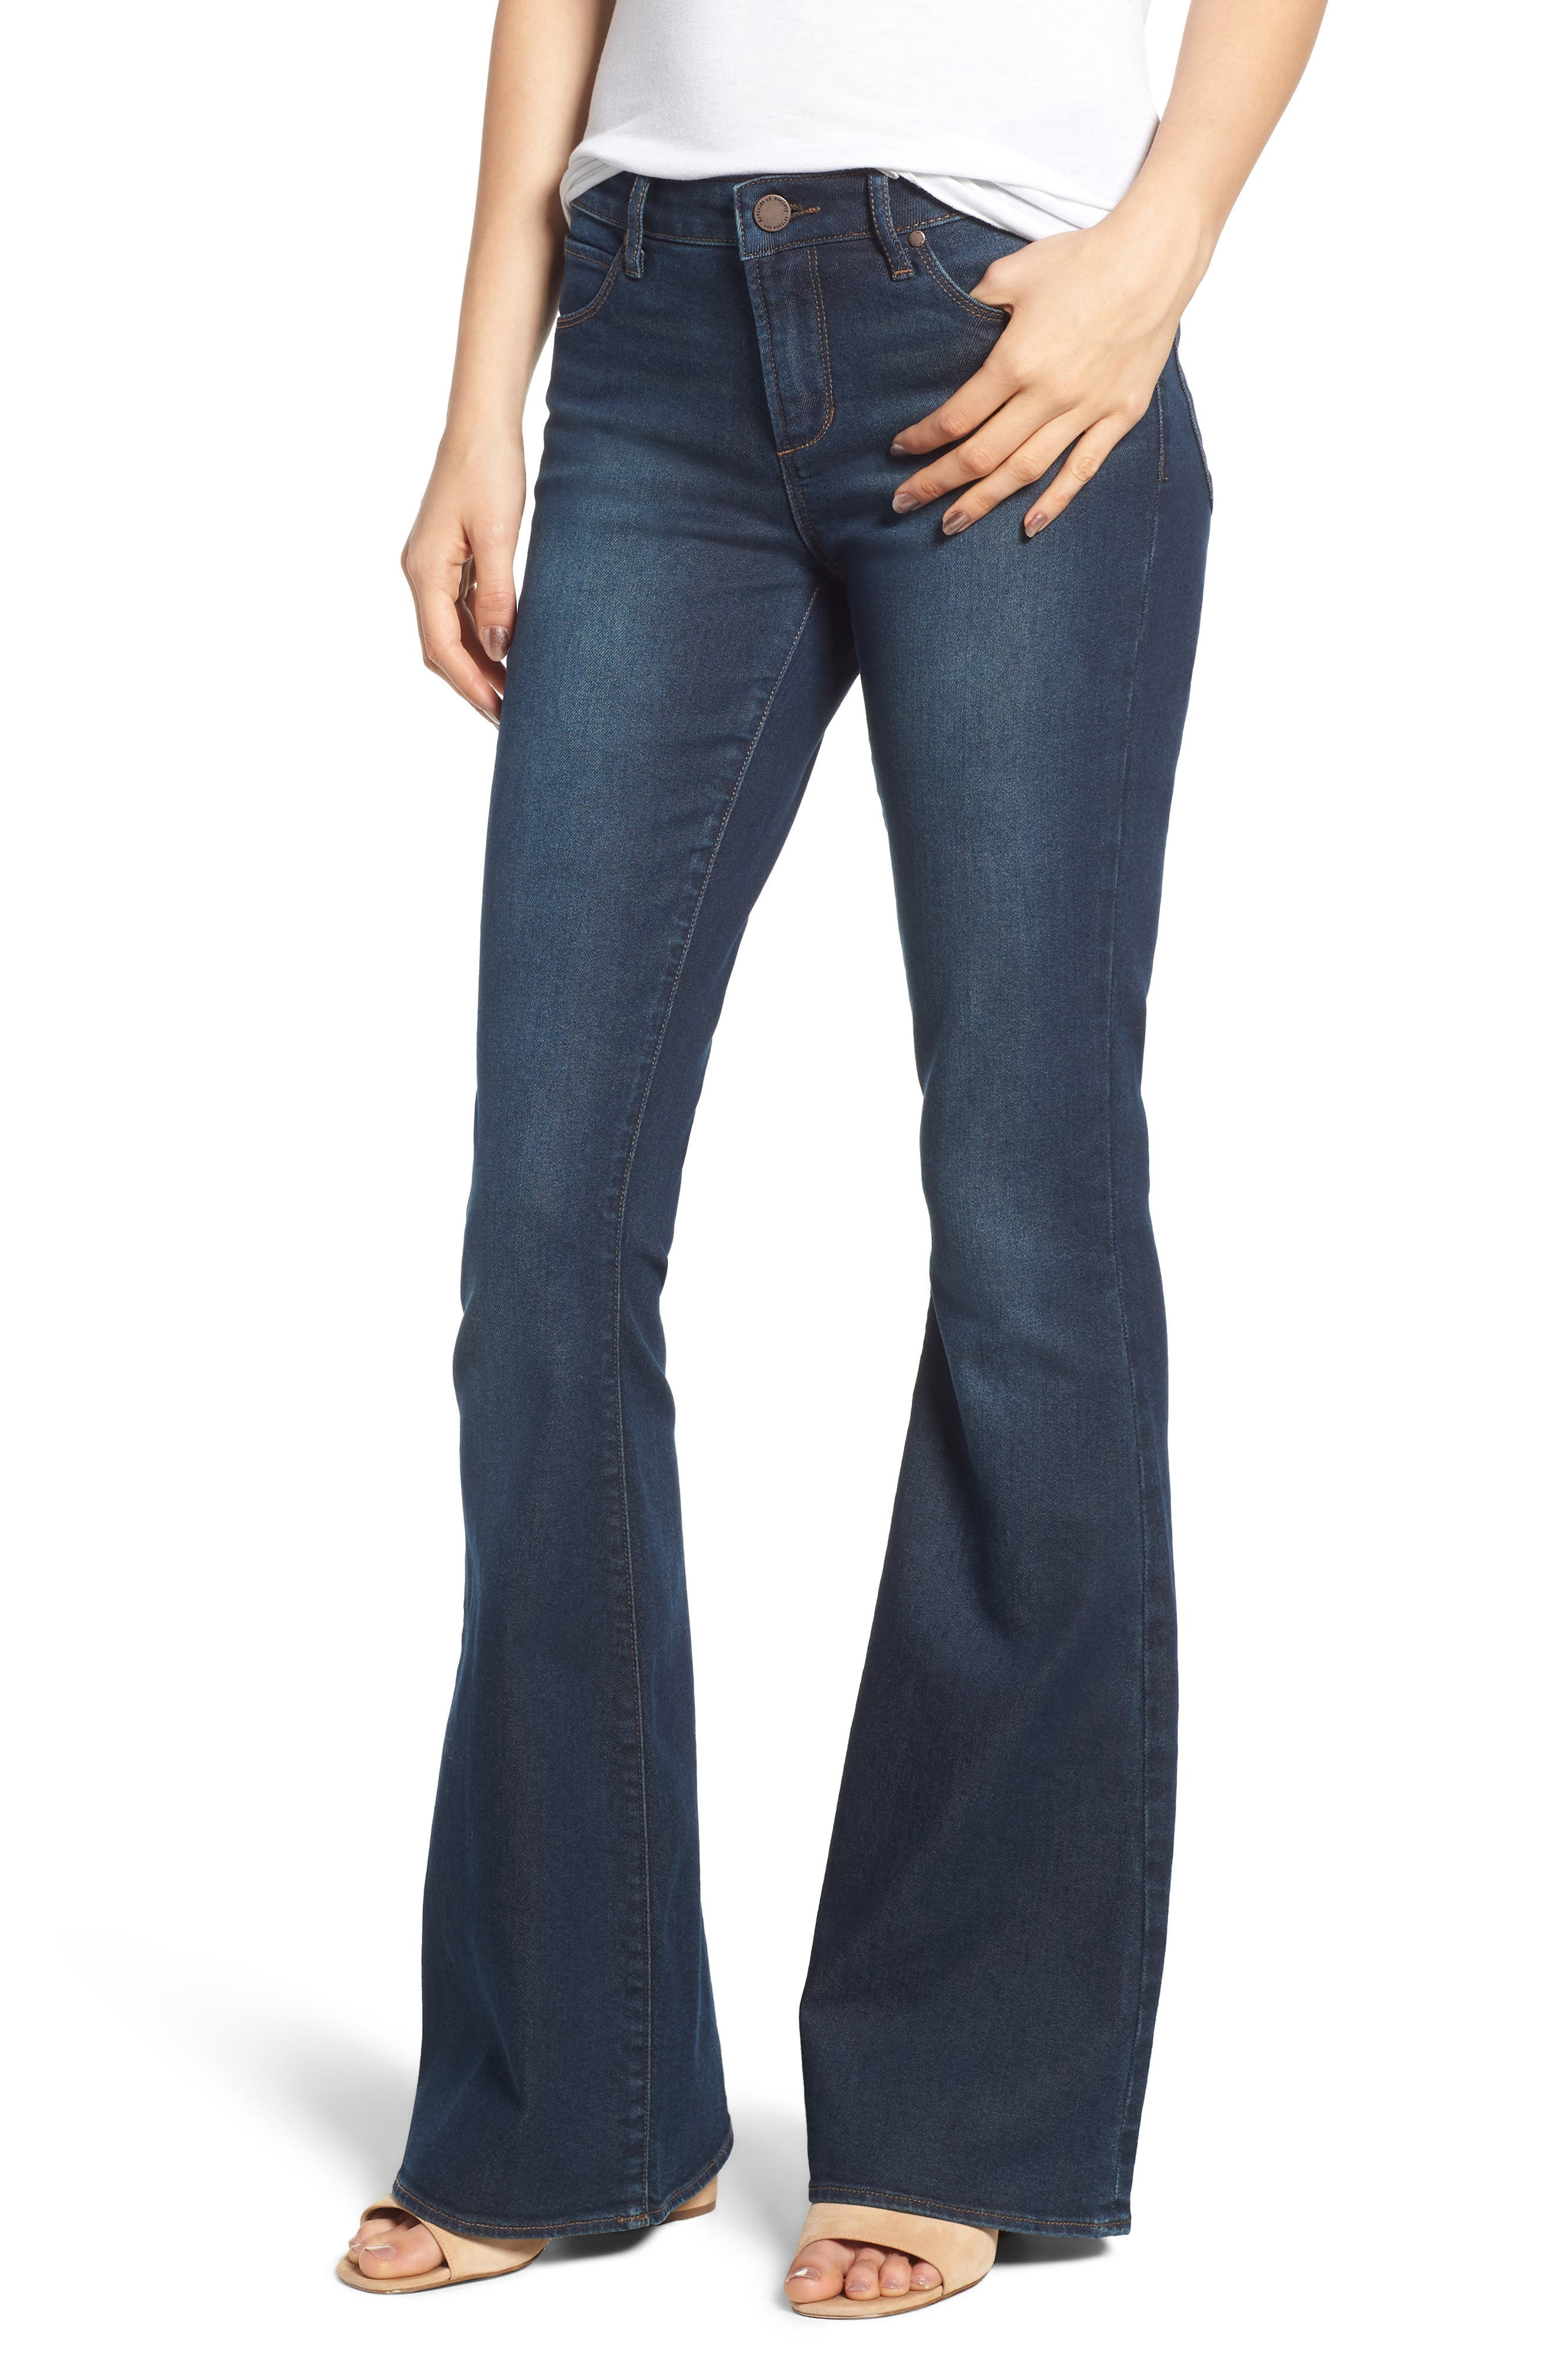 ARTICLES OF SOCIETY Faith Flare Jeans in Northport Dark Wash